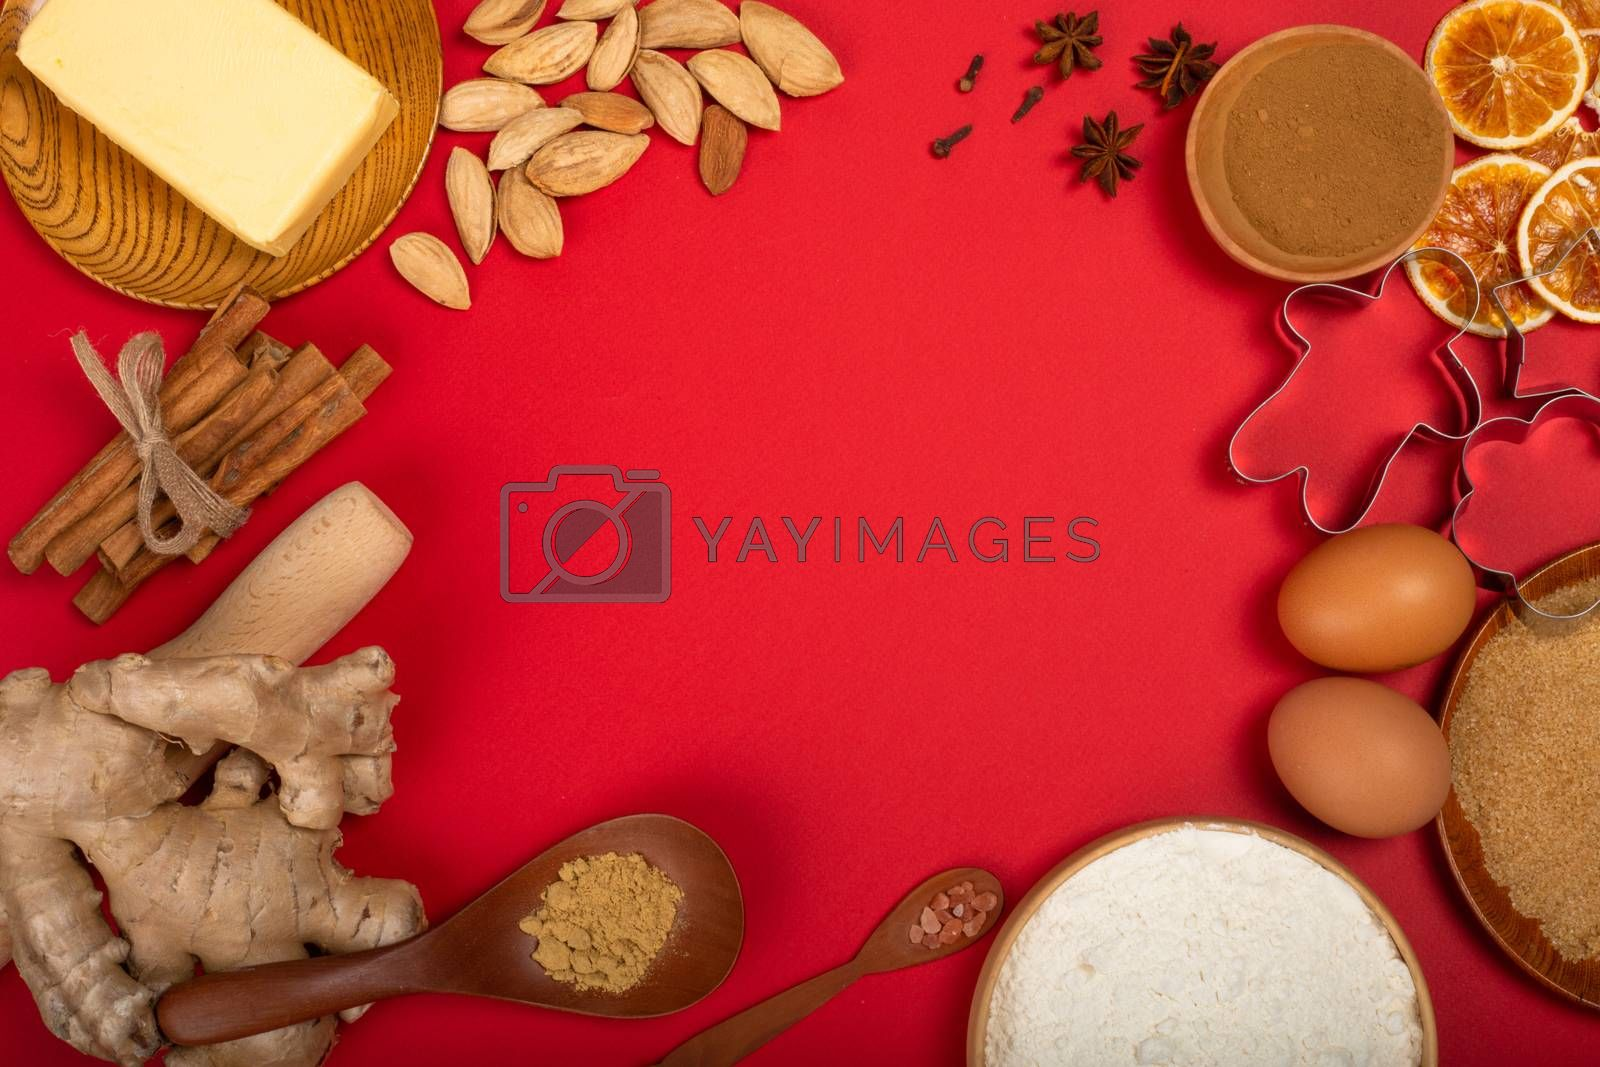 Christmas gingerbread cookies cooking background flat lay top view template with copy space for text. Baking utensils, spices and food ingredients on red paper